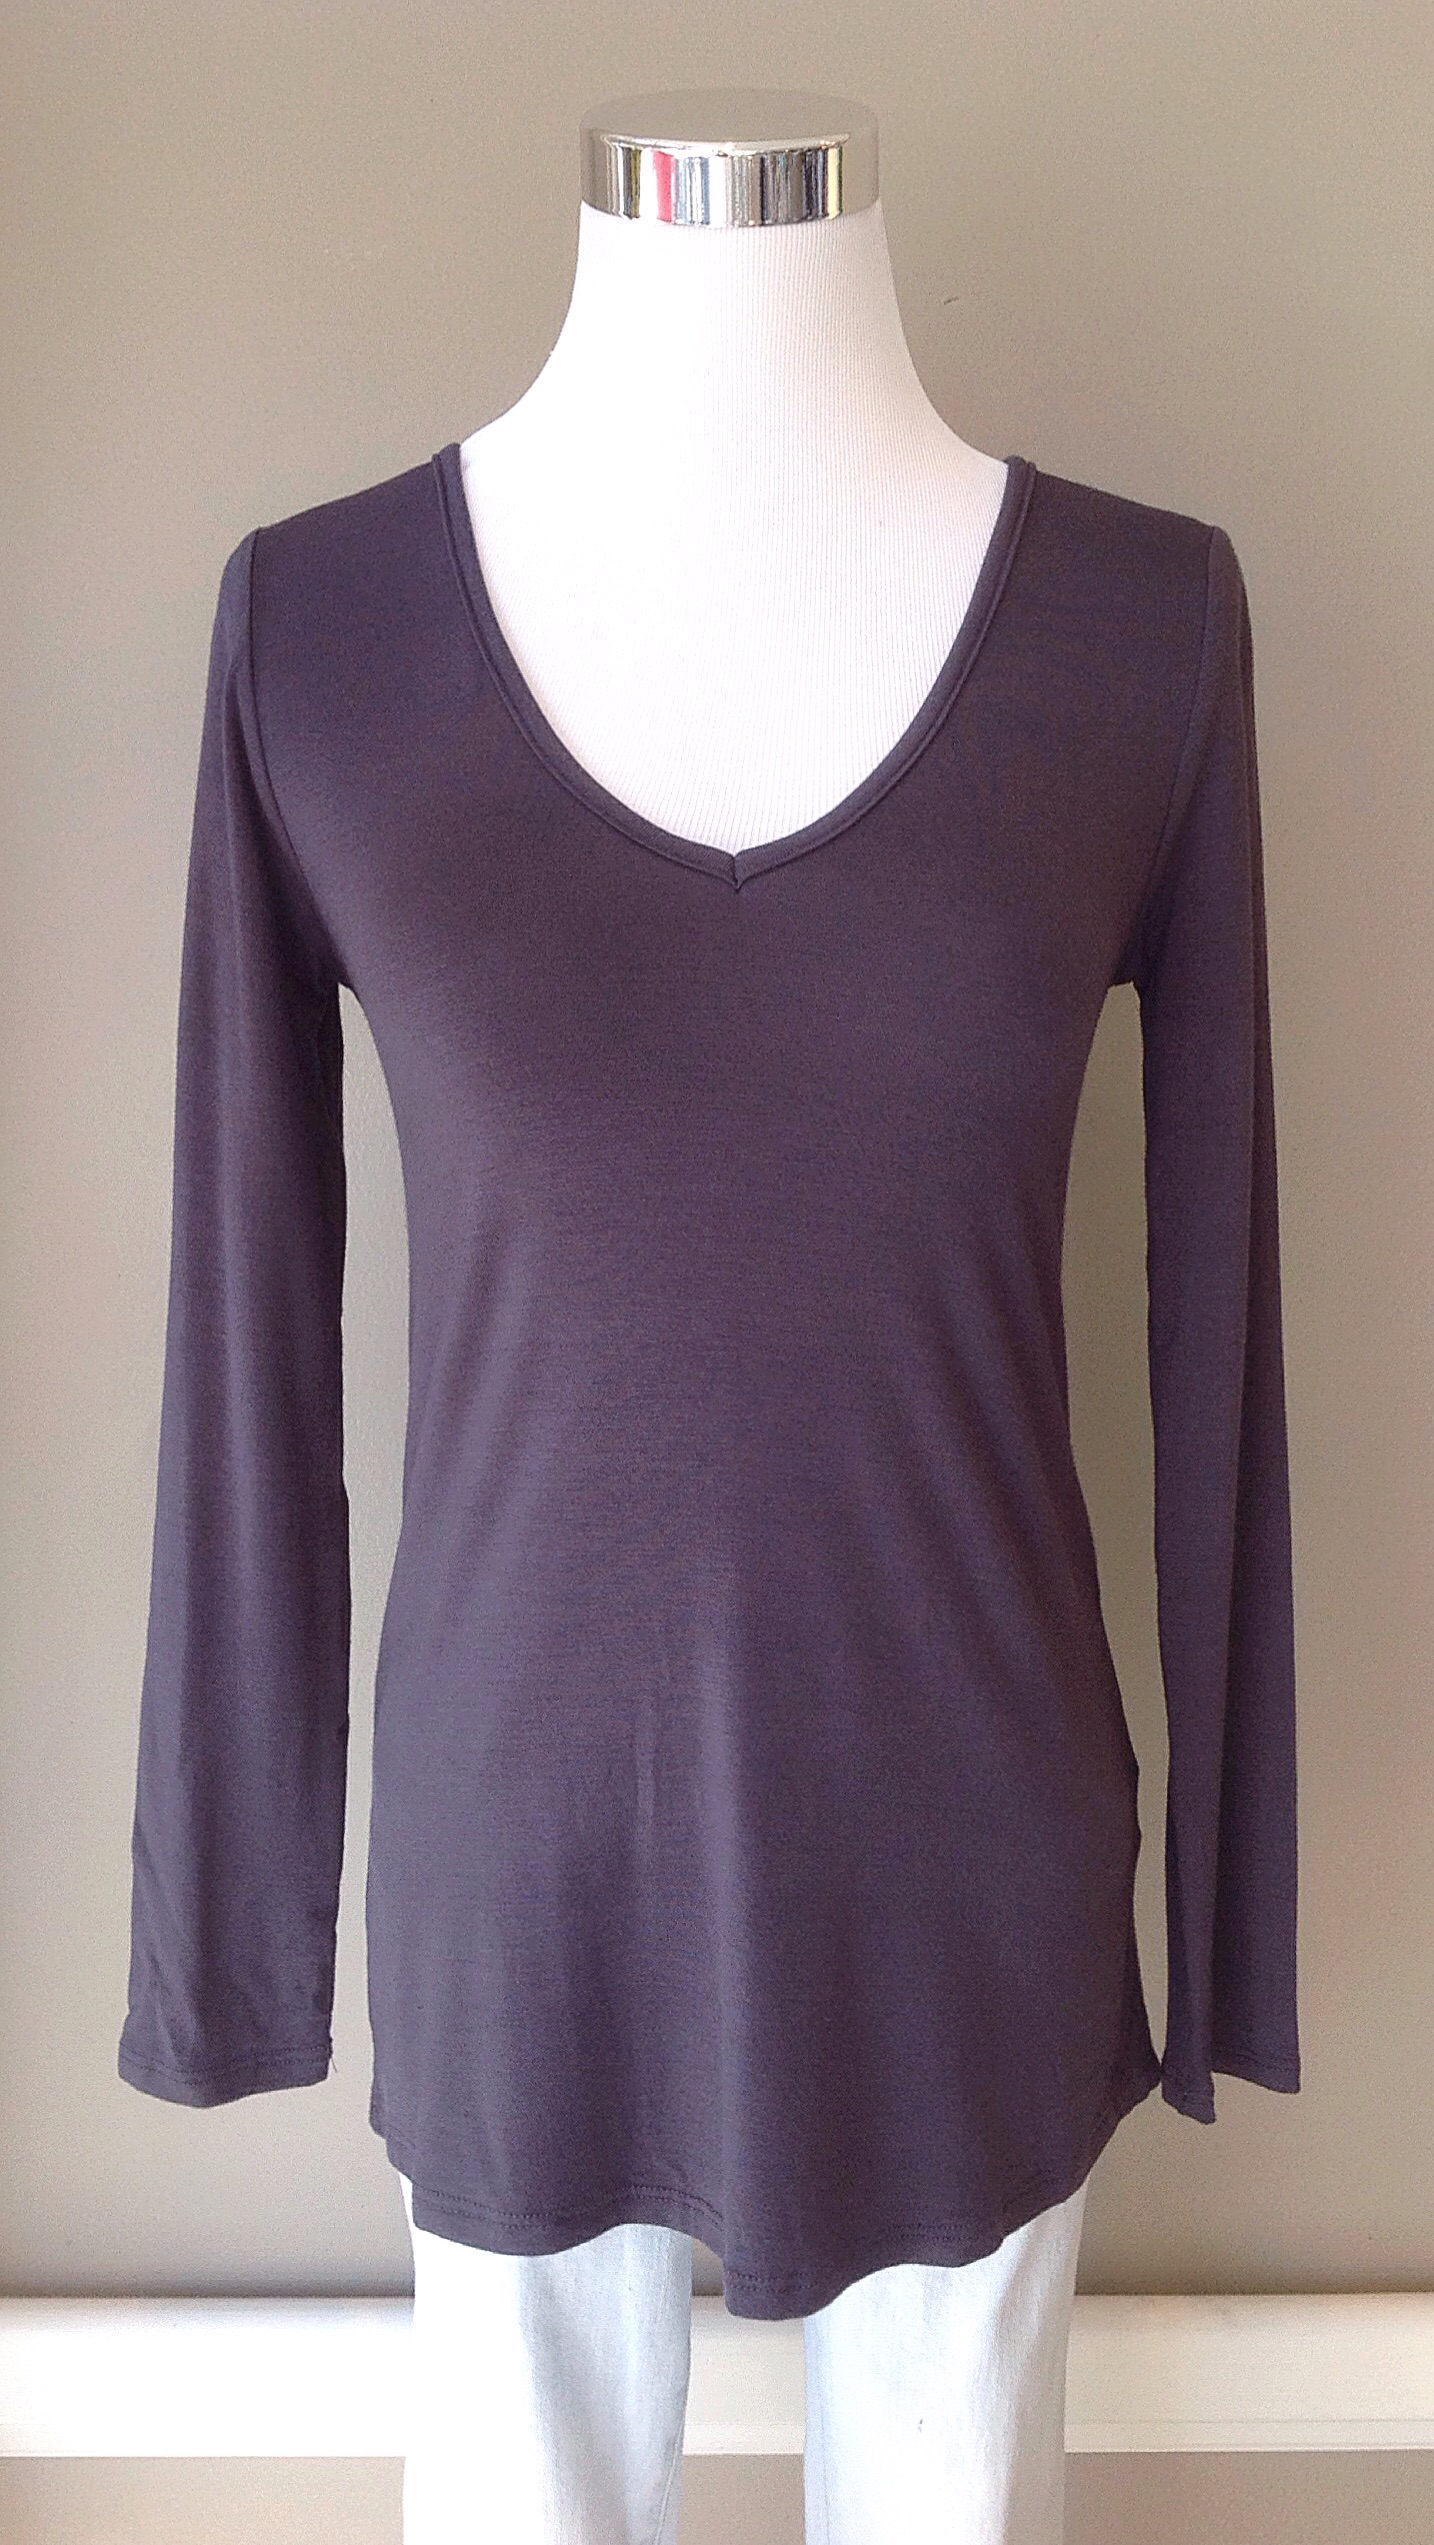 Charcoal v-neck jersey knit top, $26. Also available in warm grey.